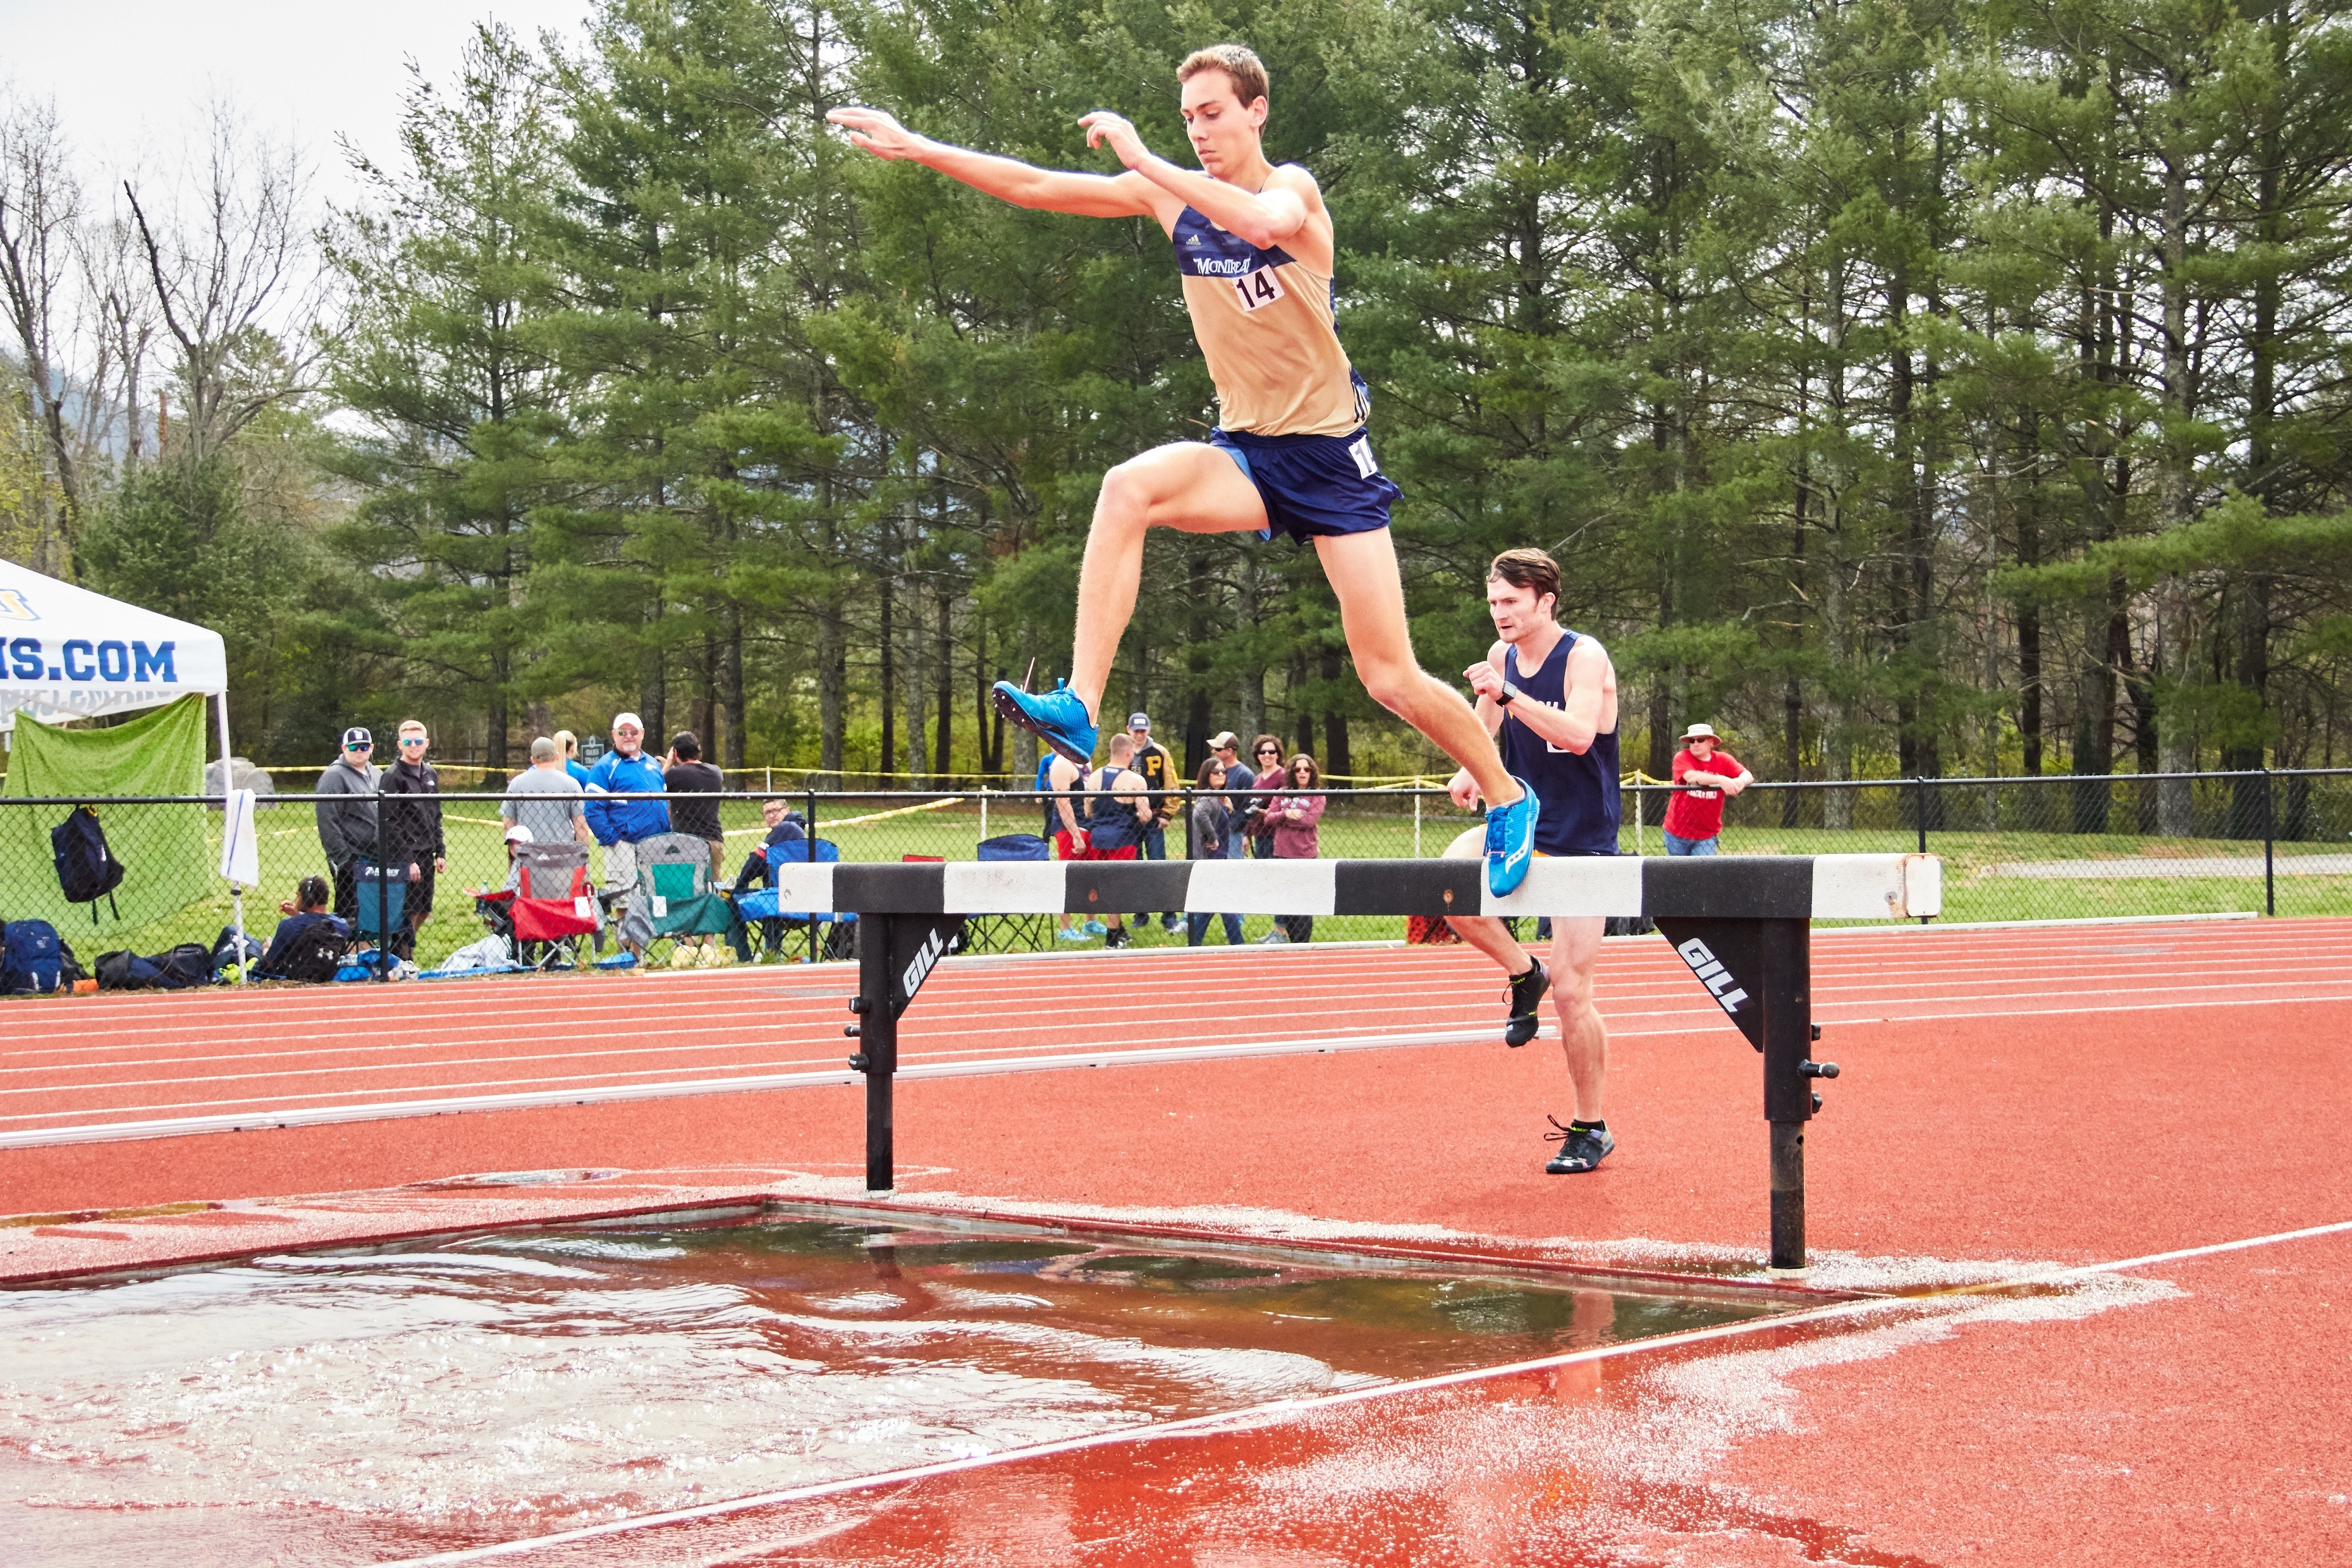 Men's track and field